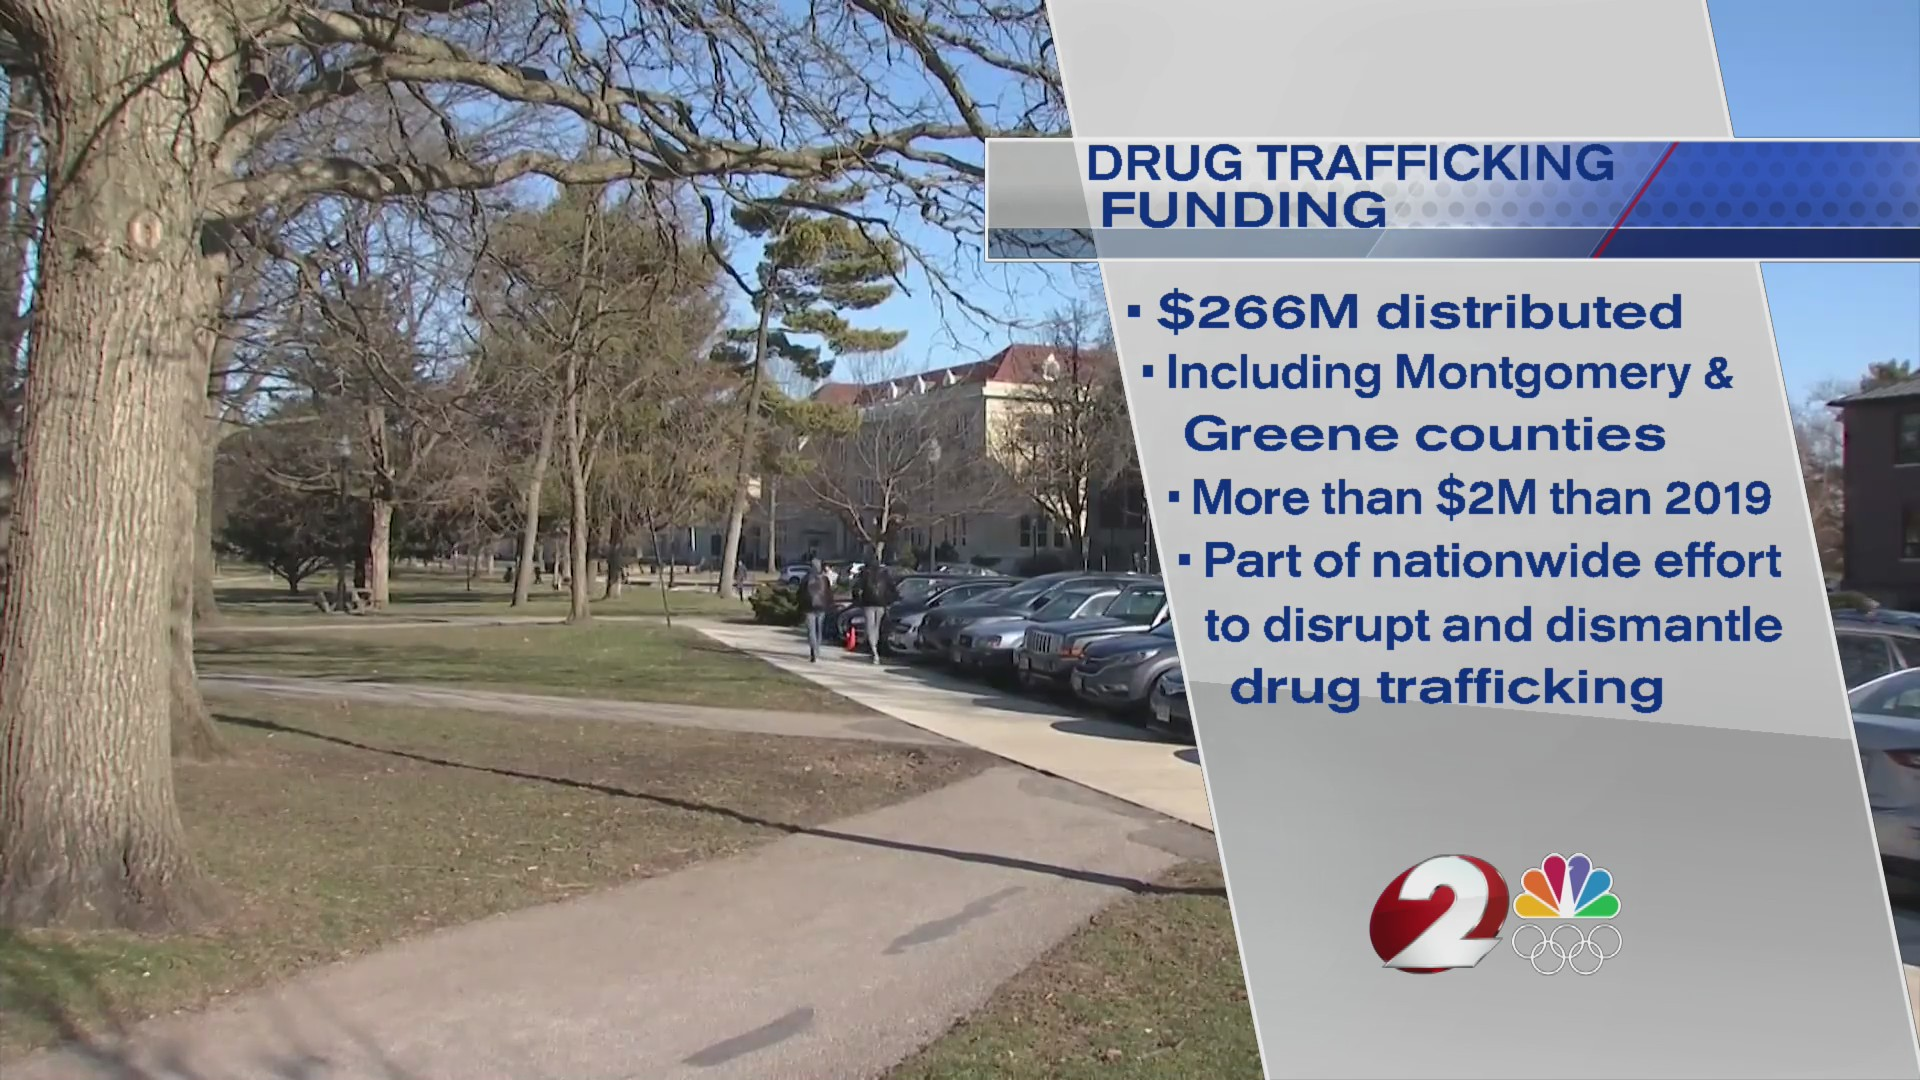 Drug trafficking funding